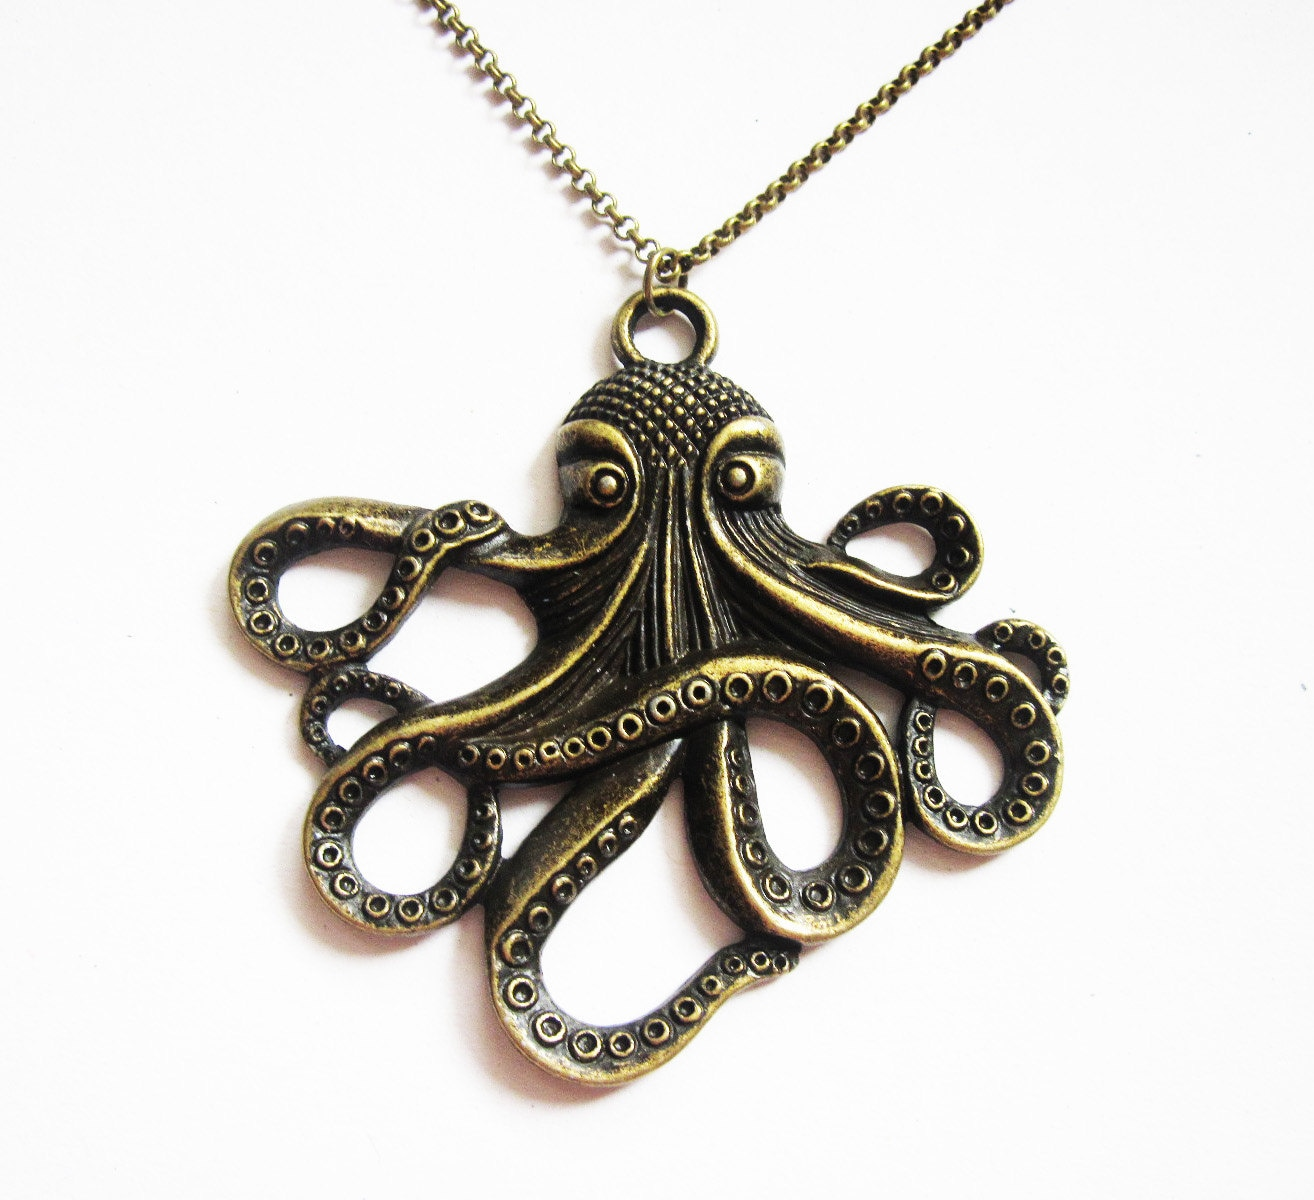 Octopus necklace brass octopus necklace octopus jewelry zoom mozeypictures Choice Image